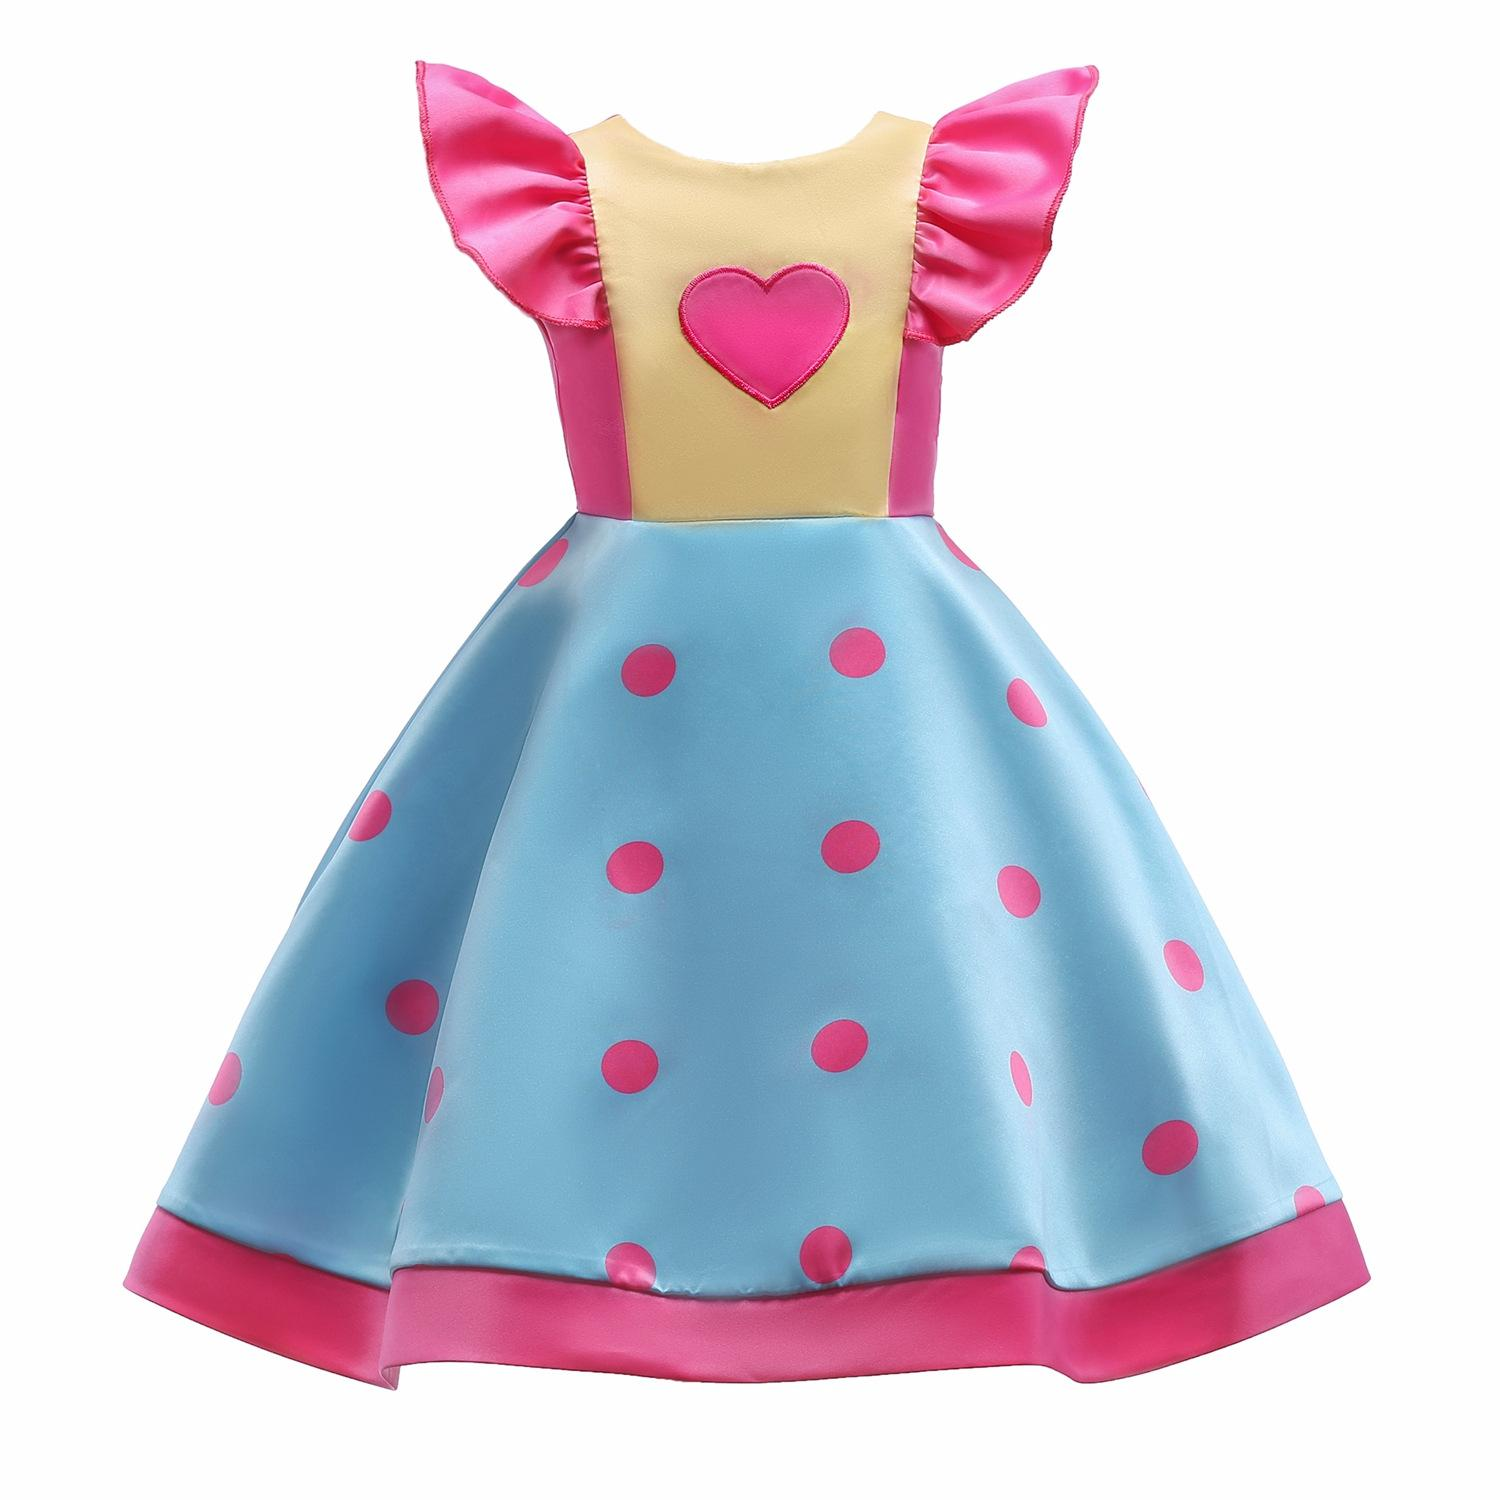 2018 New Arrival Baby Girl Dress Princess Dress For Party Wedding ...